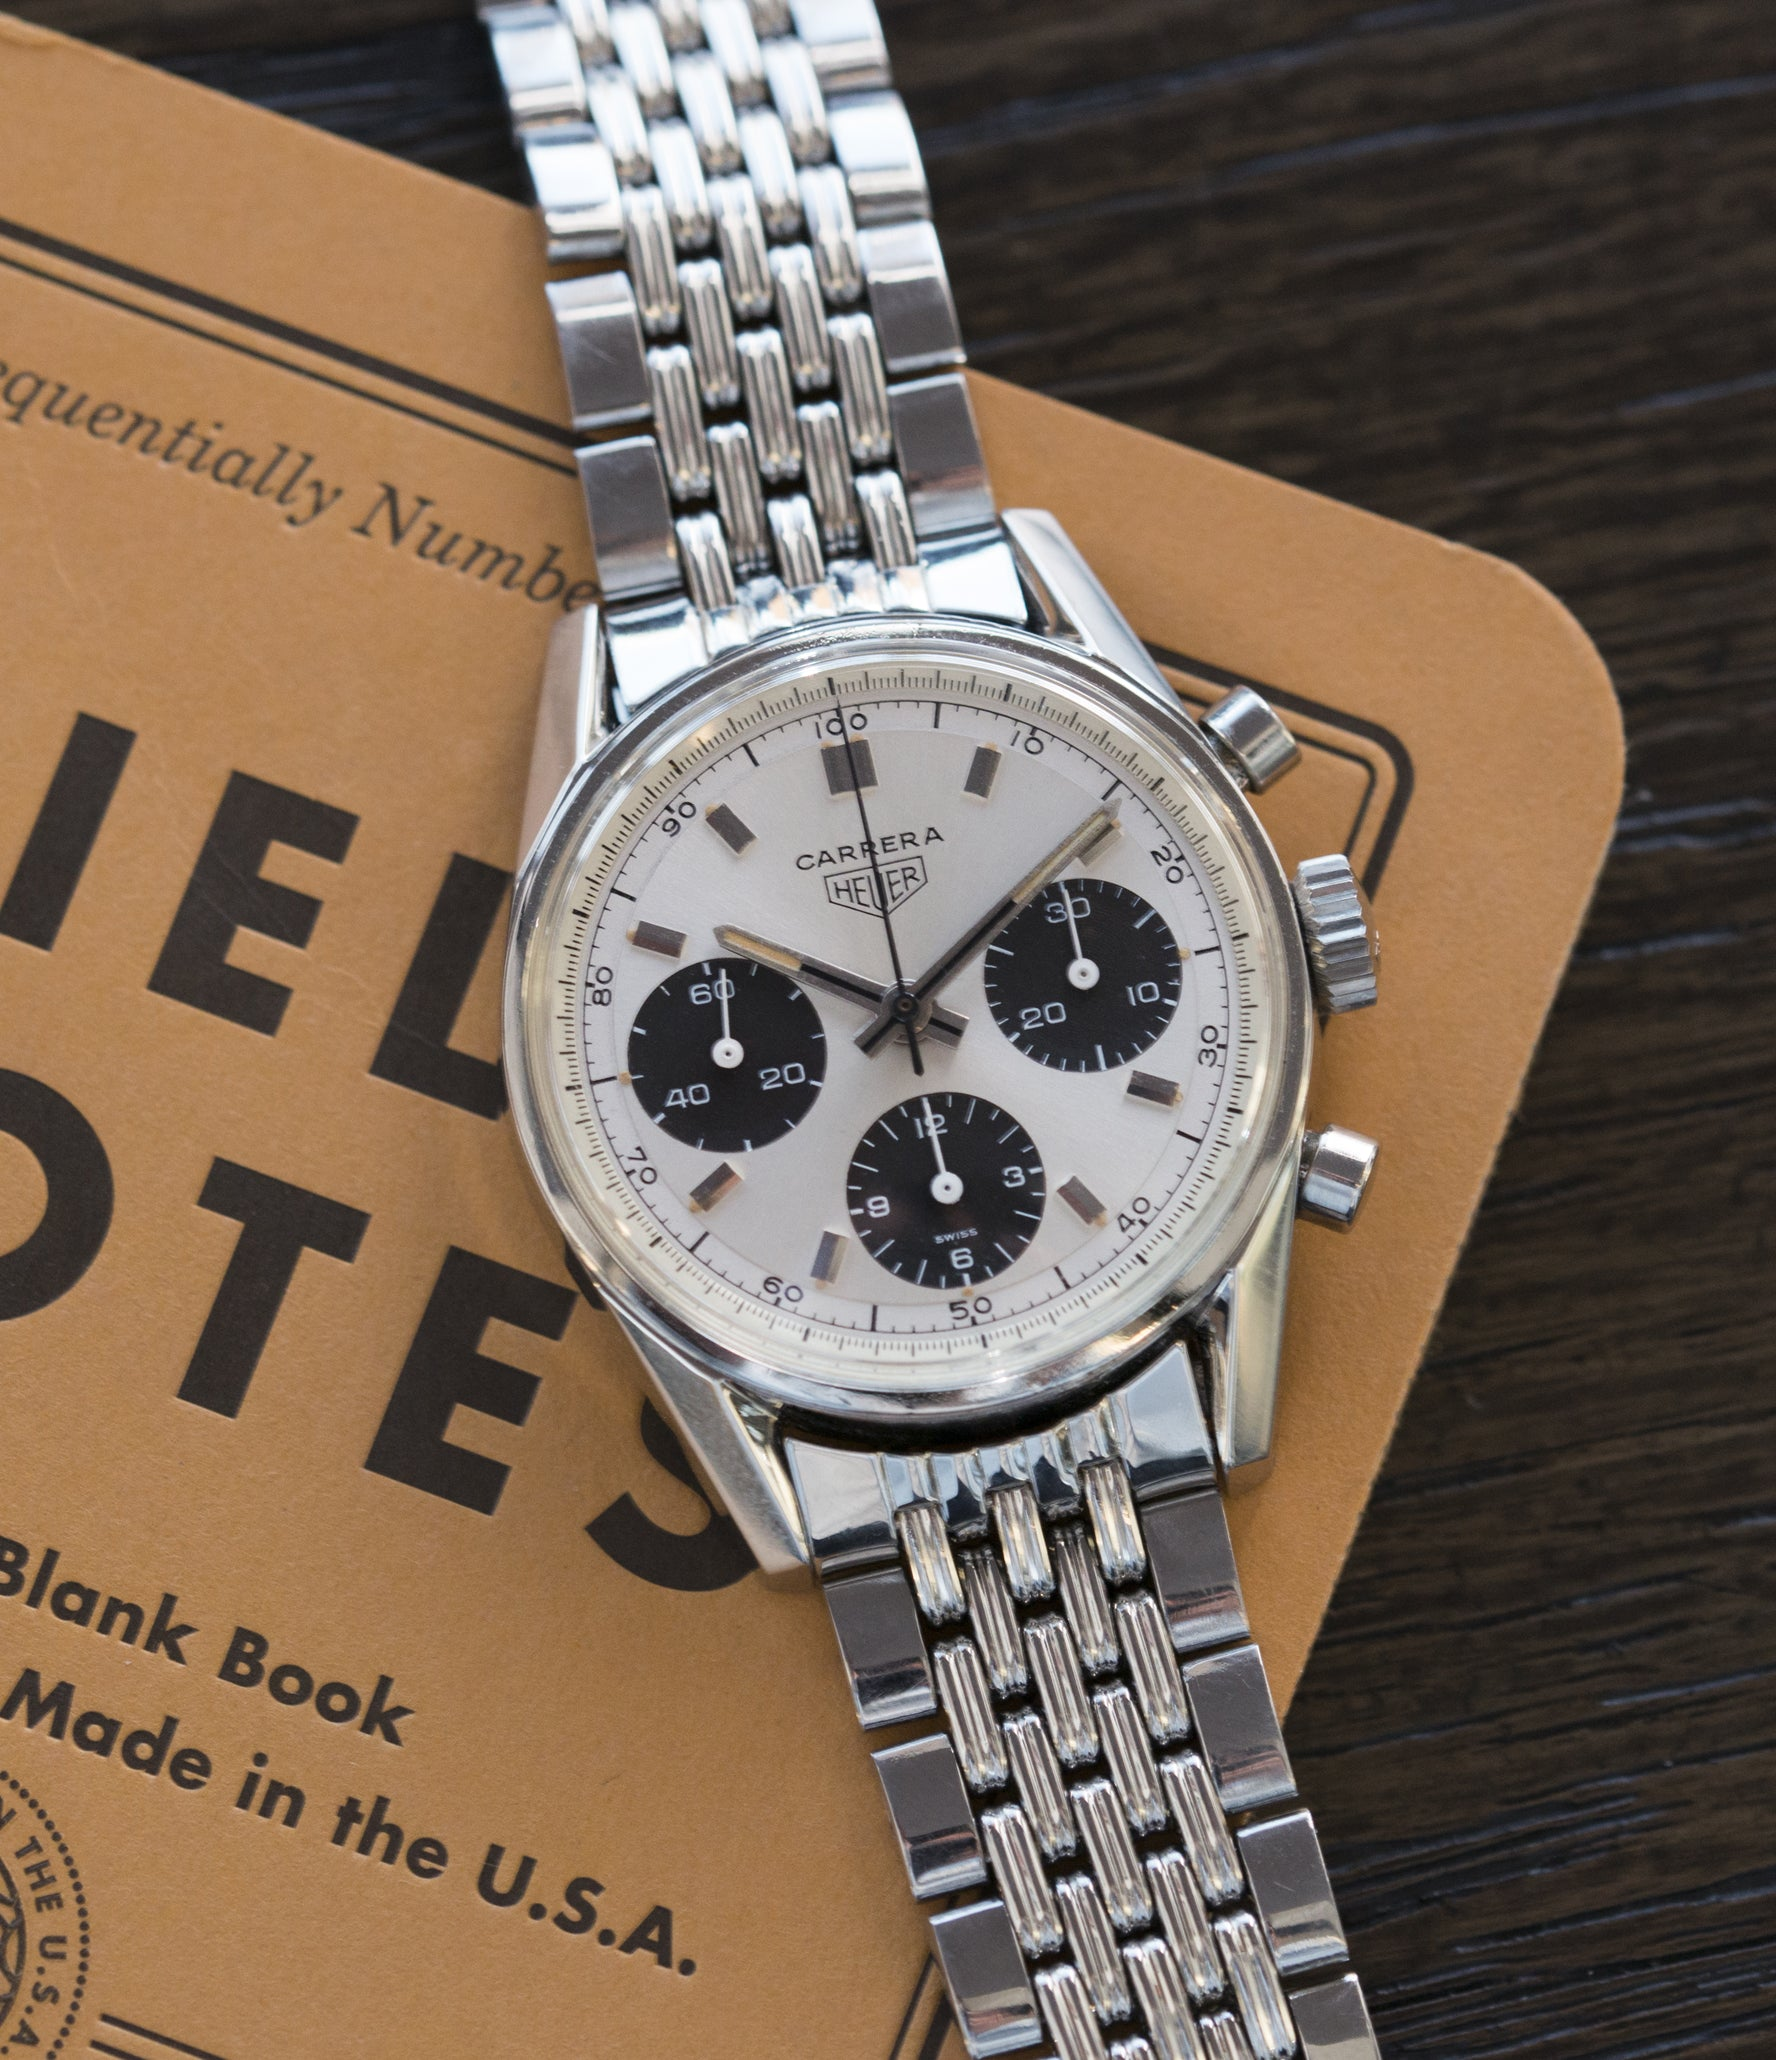 silver black dial vintage sports wristwatch Heuer Carrera 2447SND panda dial steel sport watch online at A Collected Man London UK specialist of rare vintage watches